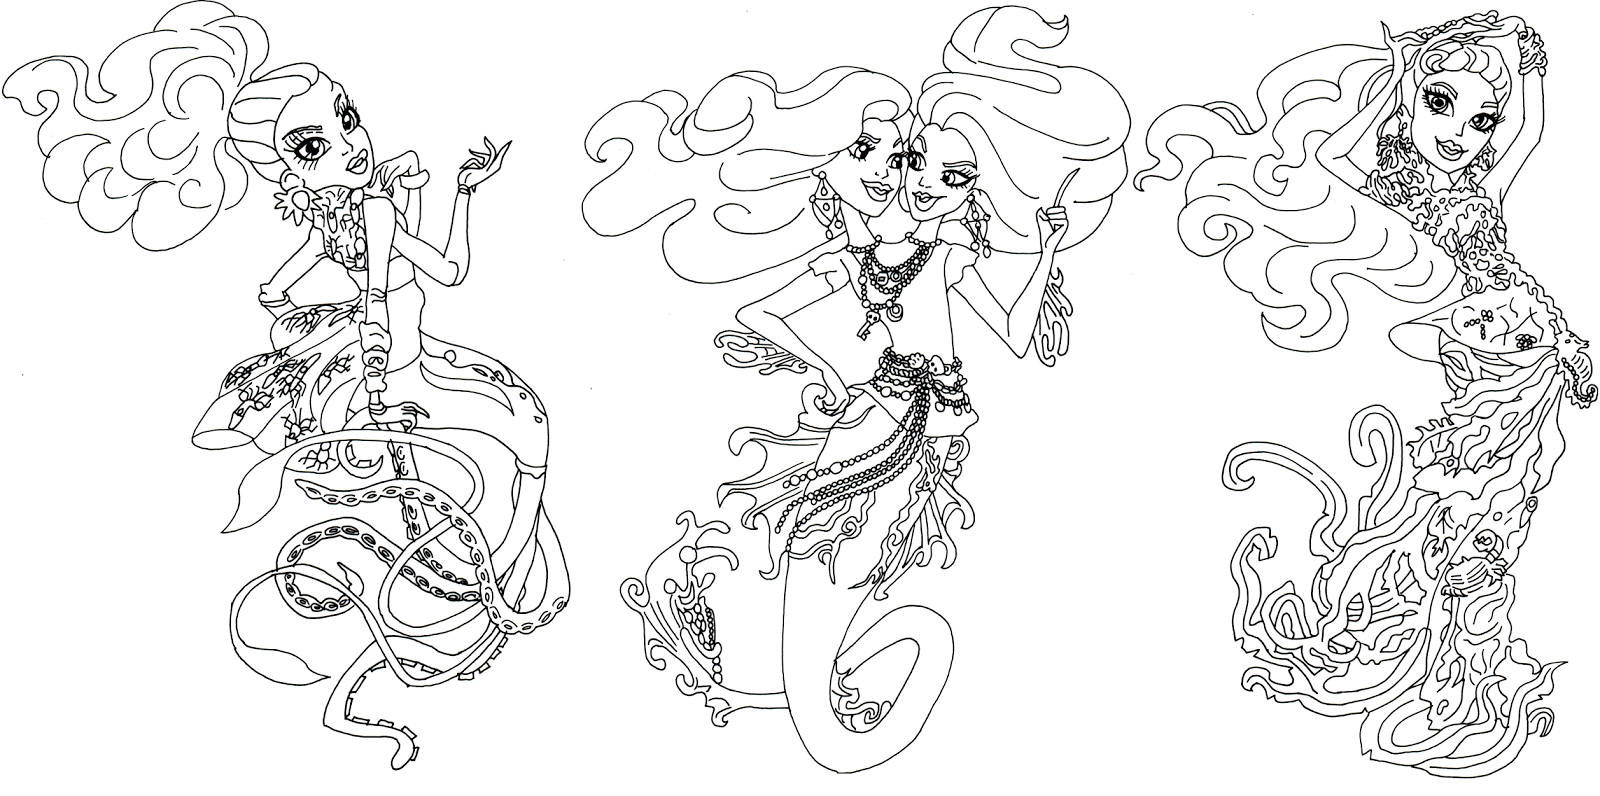 great scarrier reef monster high coloring page - Monster High Color Pages Free